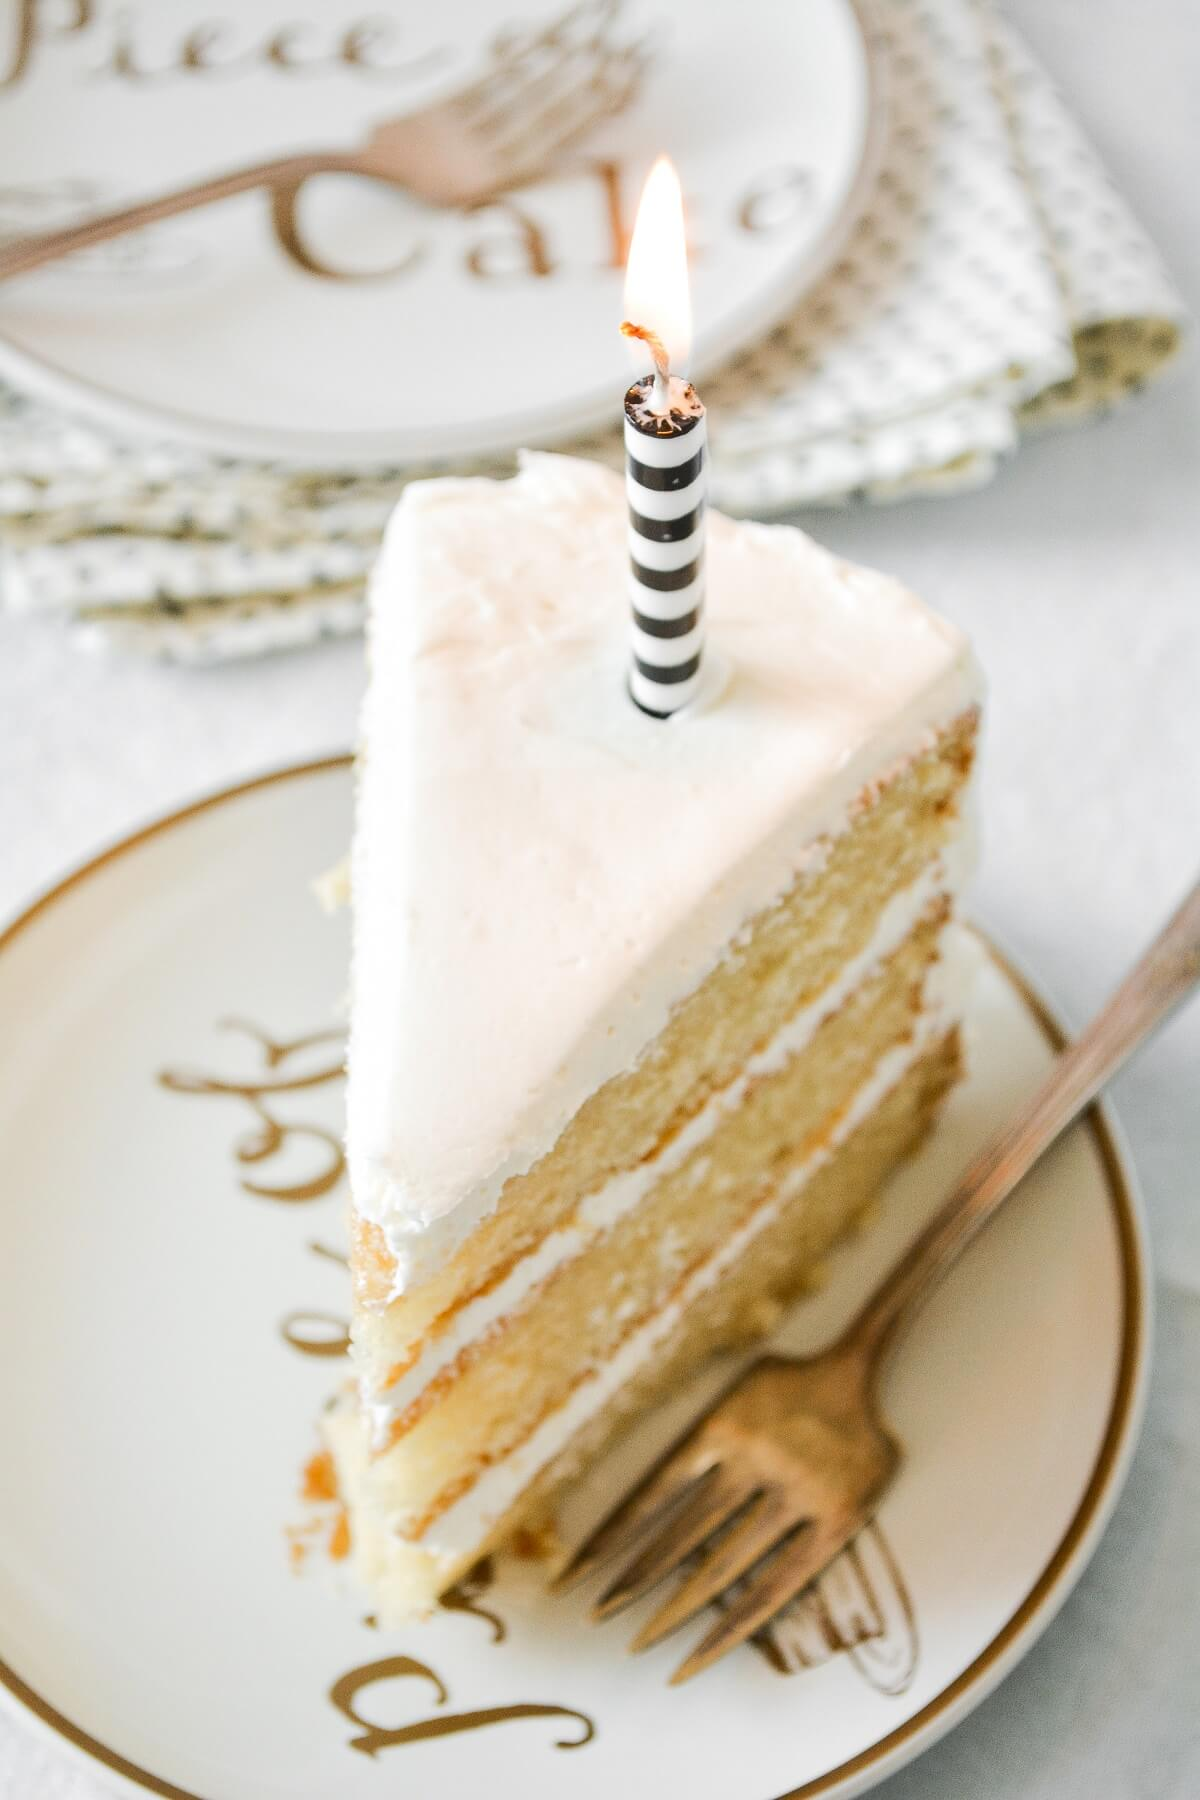 A slice of vanilla cake with a black and white striped candle.